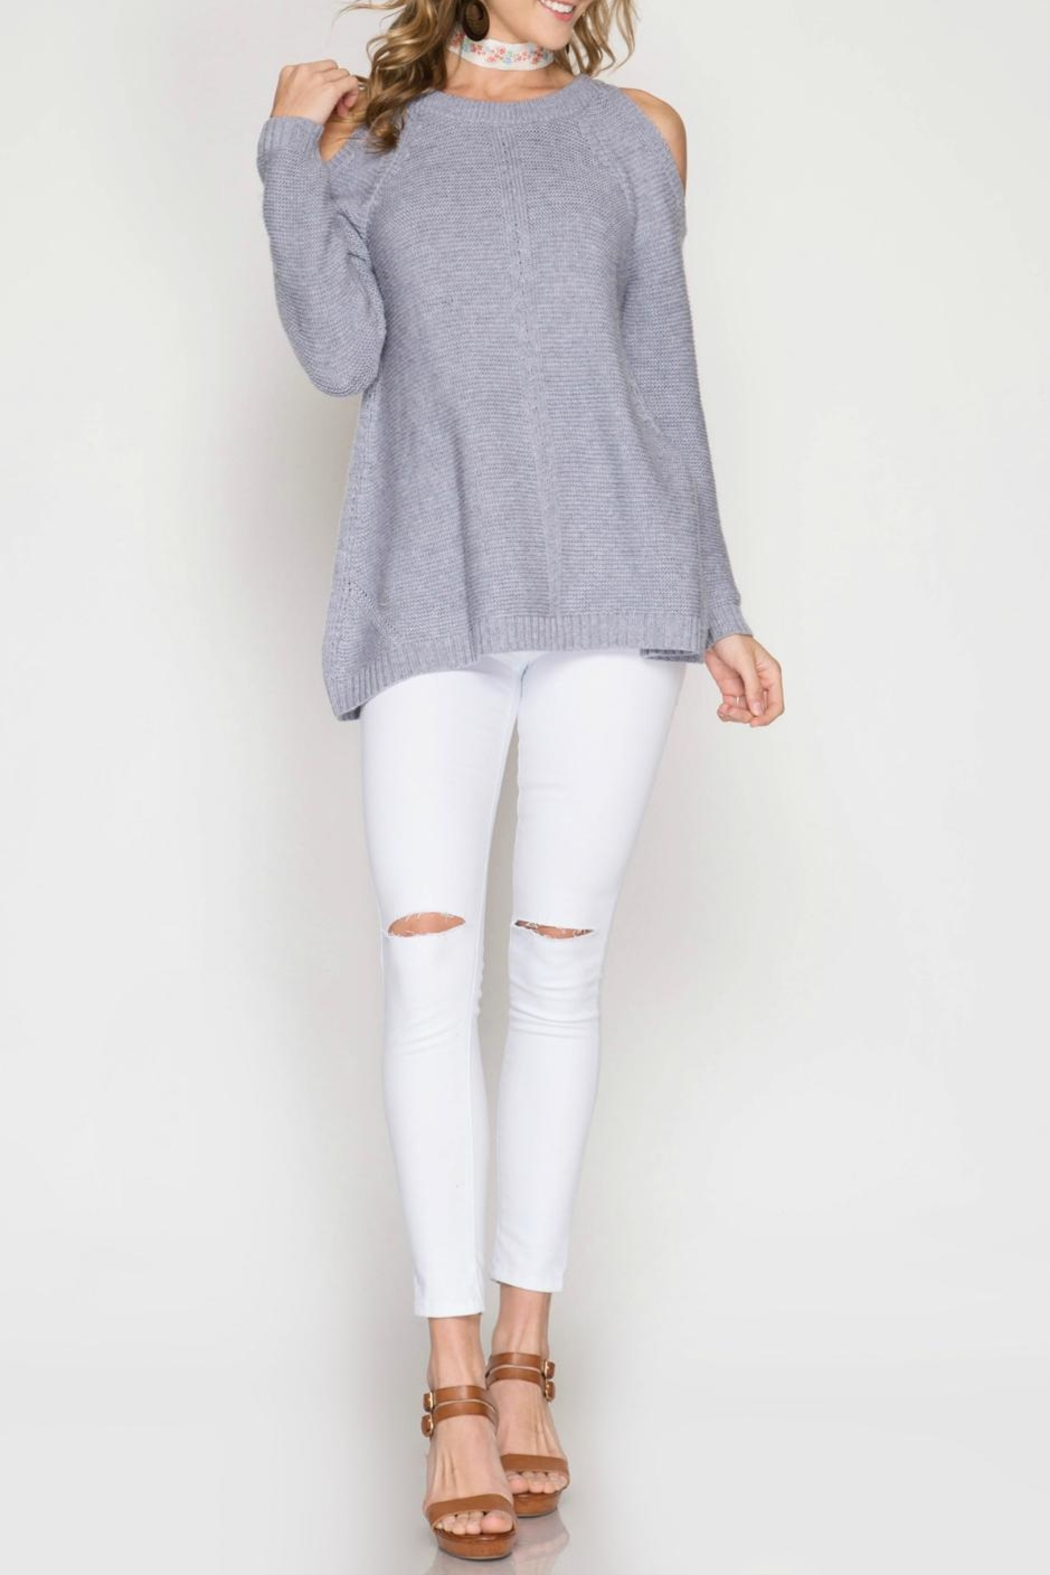 She Sky Ribbed Cold Shoulder Sweater From Washington By Lulus